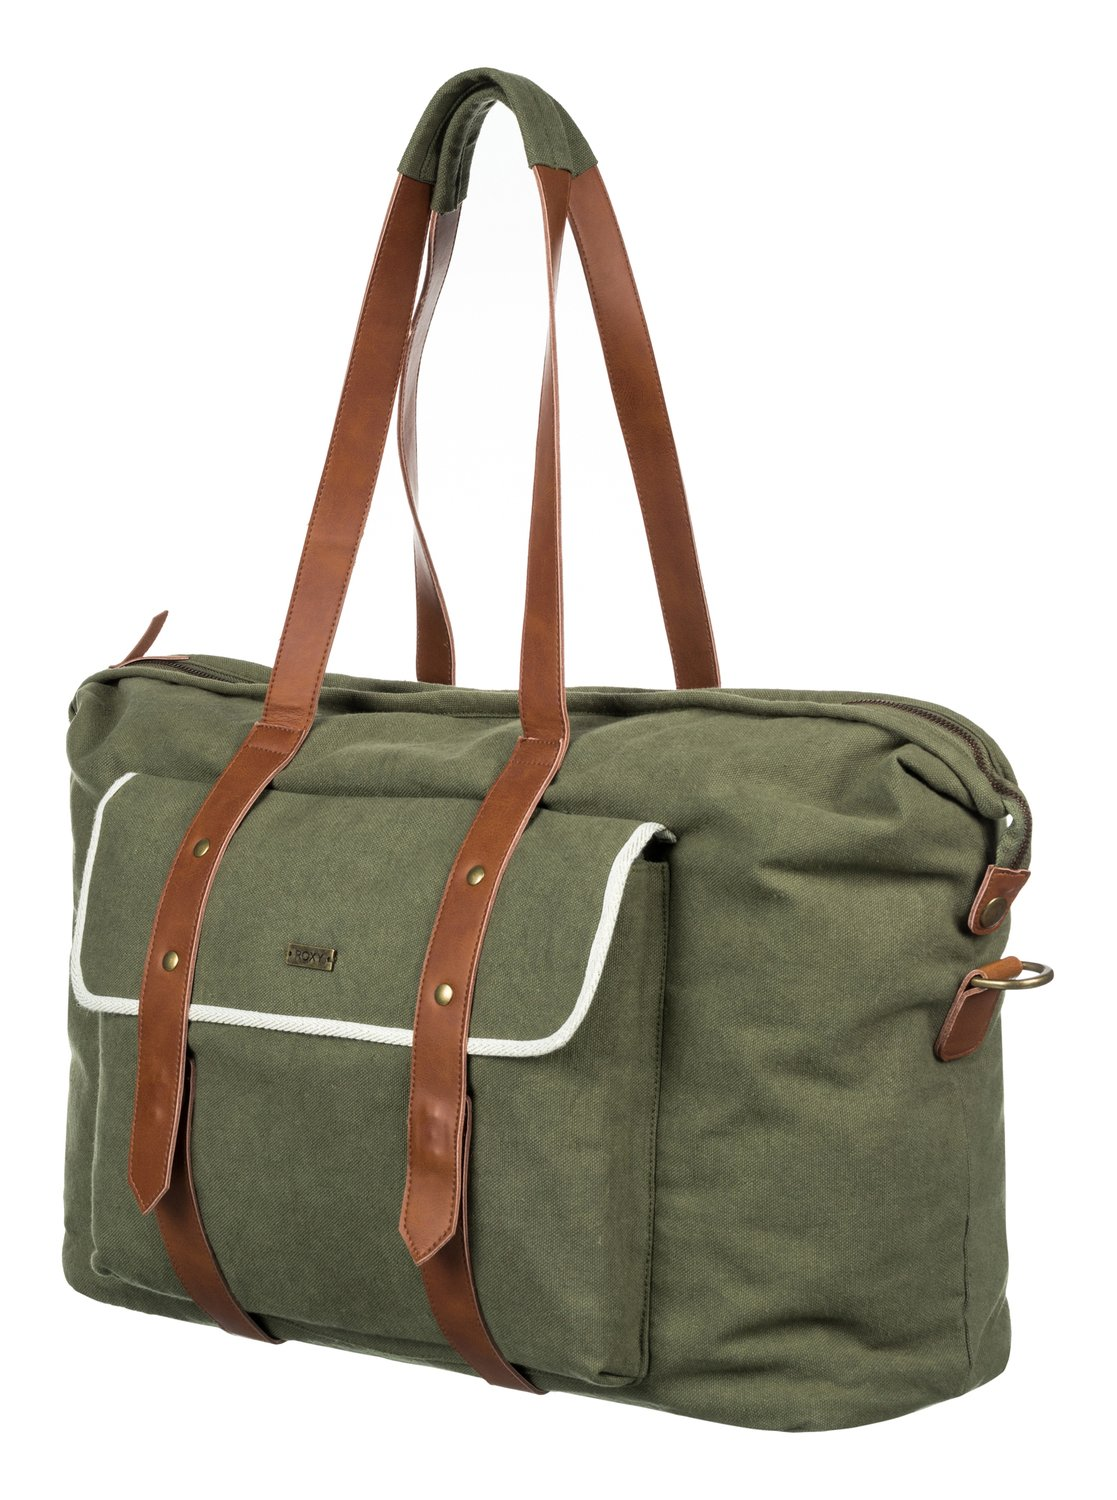 Roxy Beach Entry Weekend Womens Luggage One Size Dusty Olive 0Q26jsO